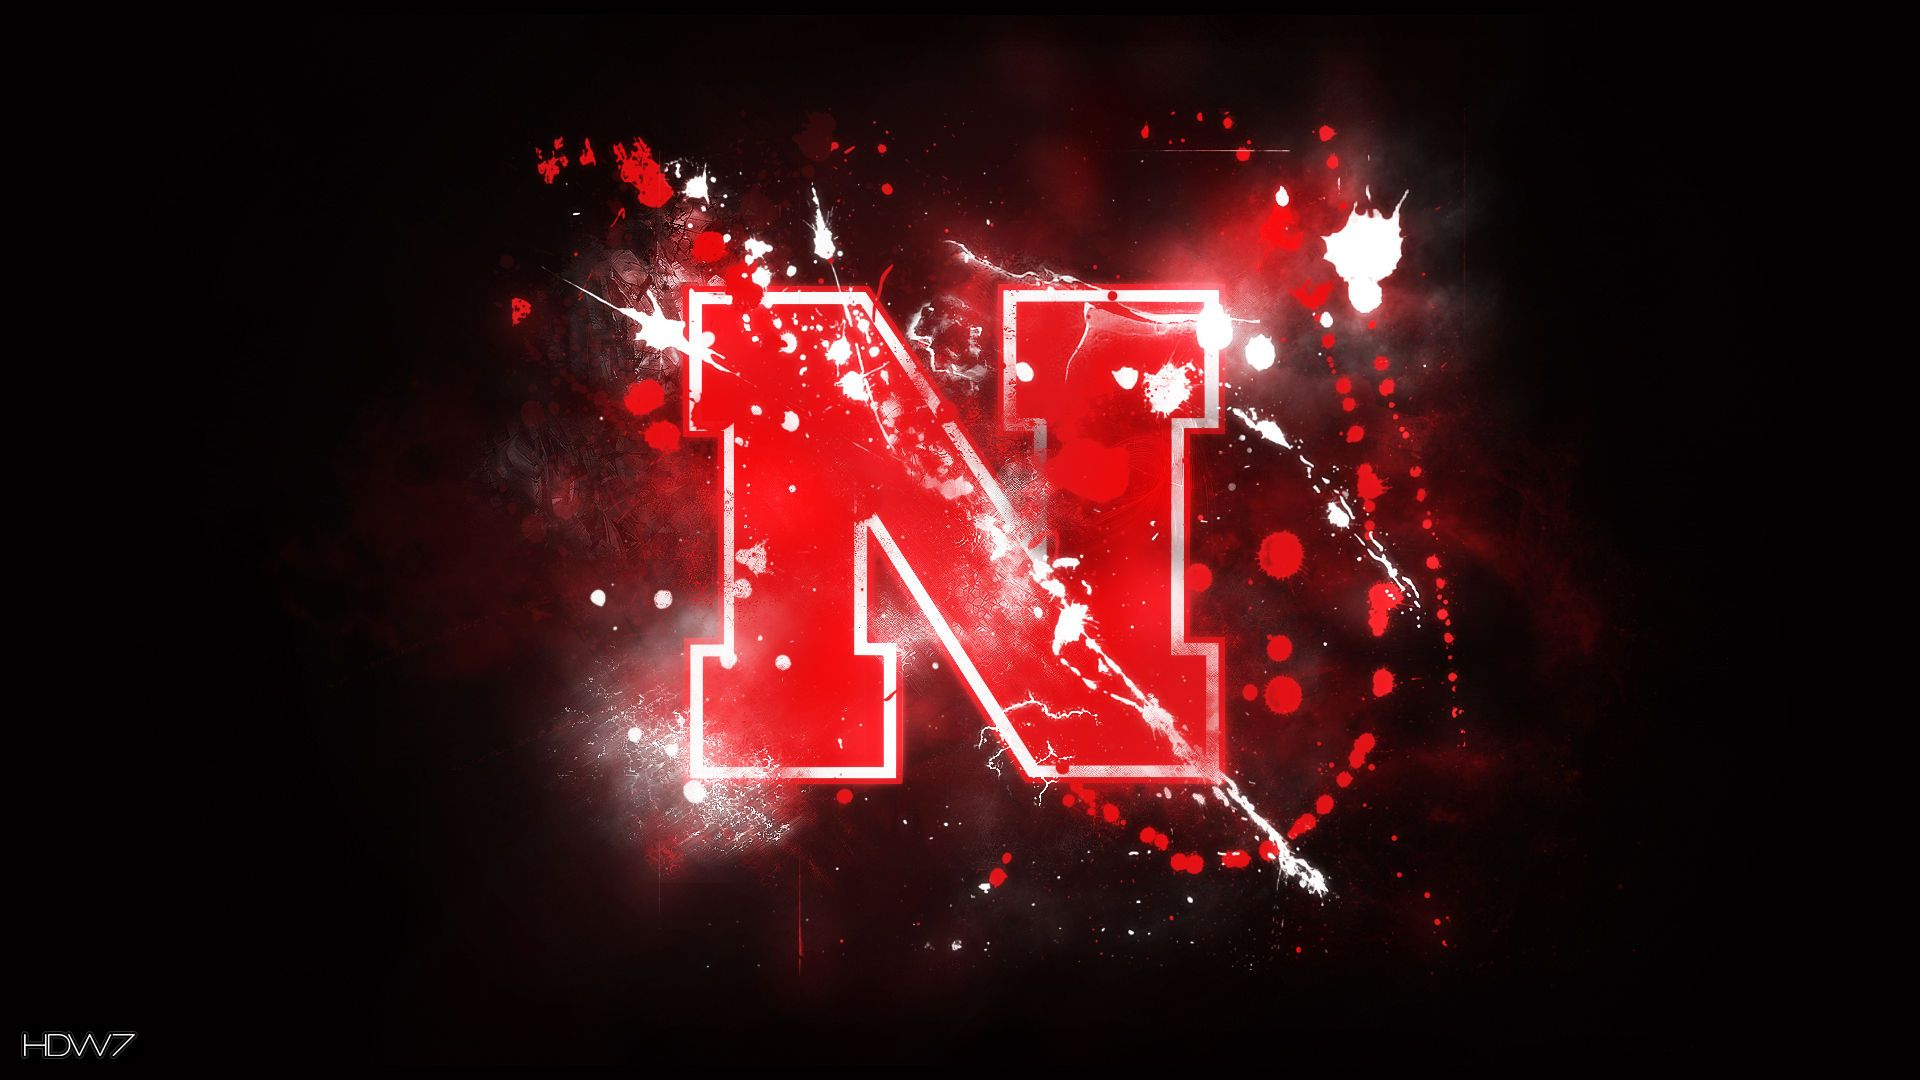 N Name Wallpaper Best Backgrounds Of N Name Colelction 1920x1080